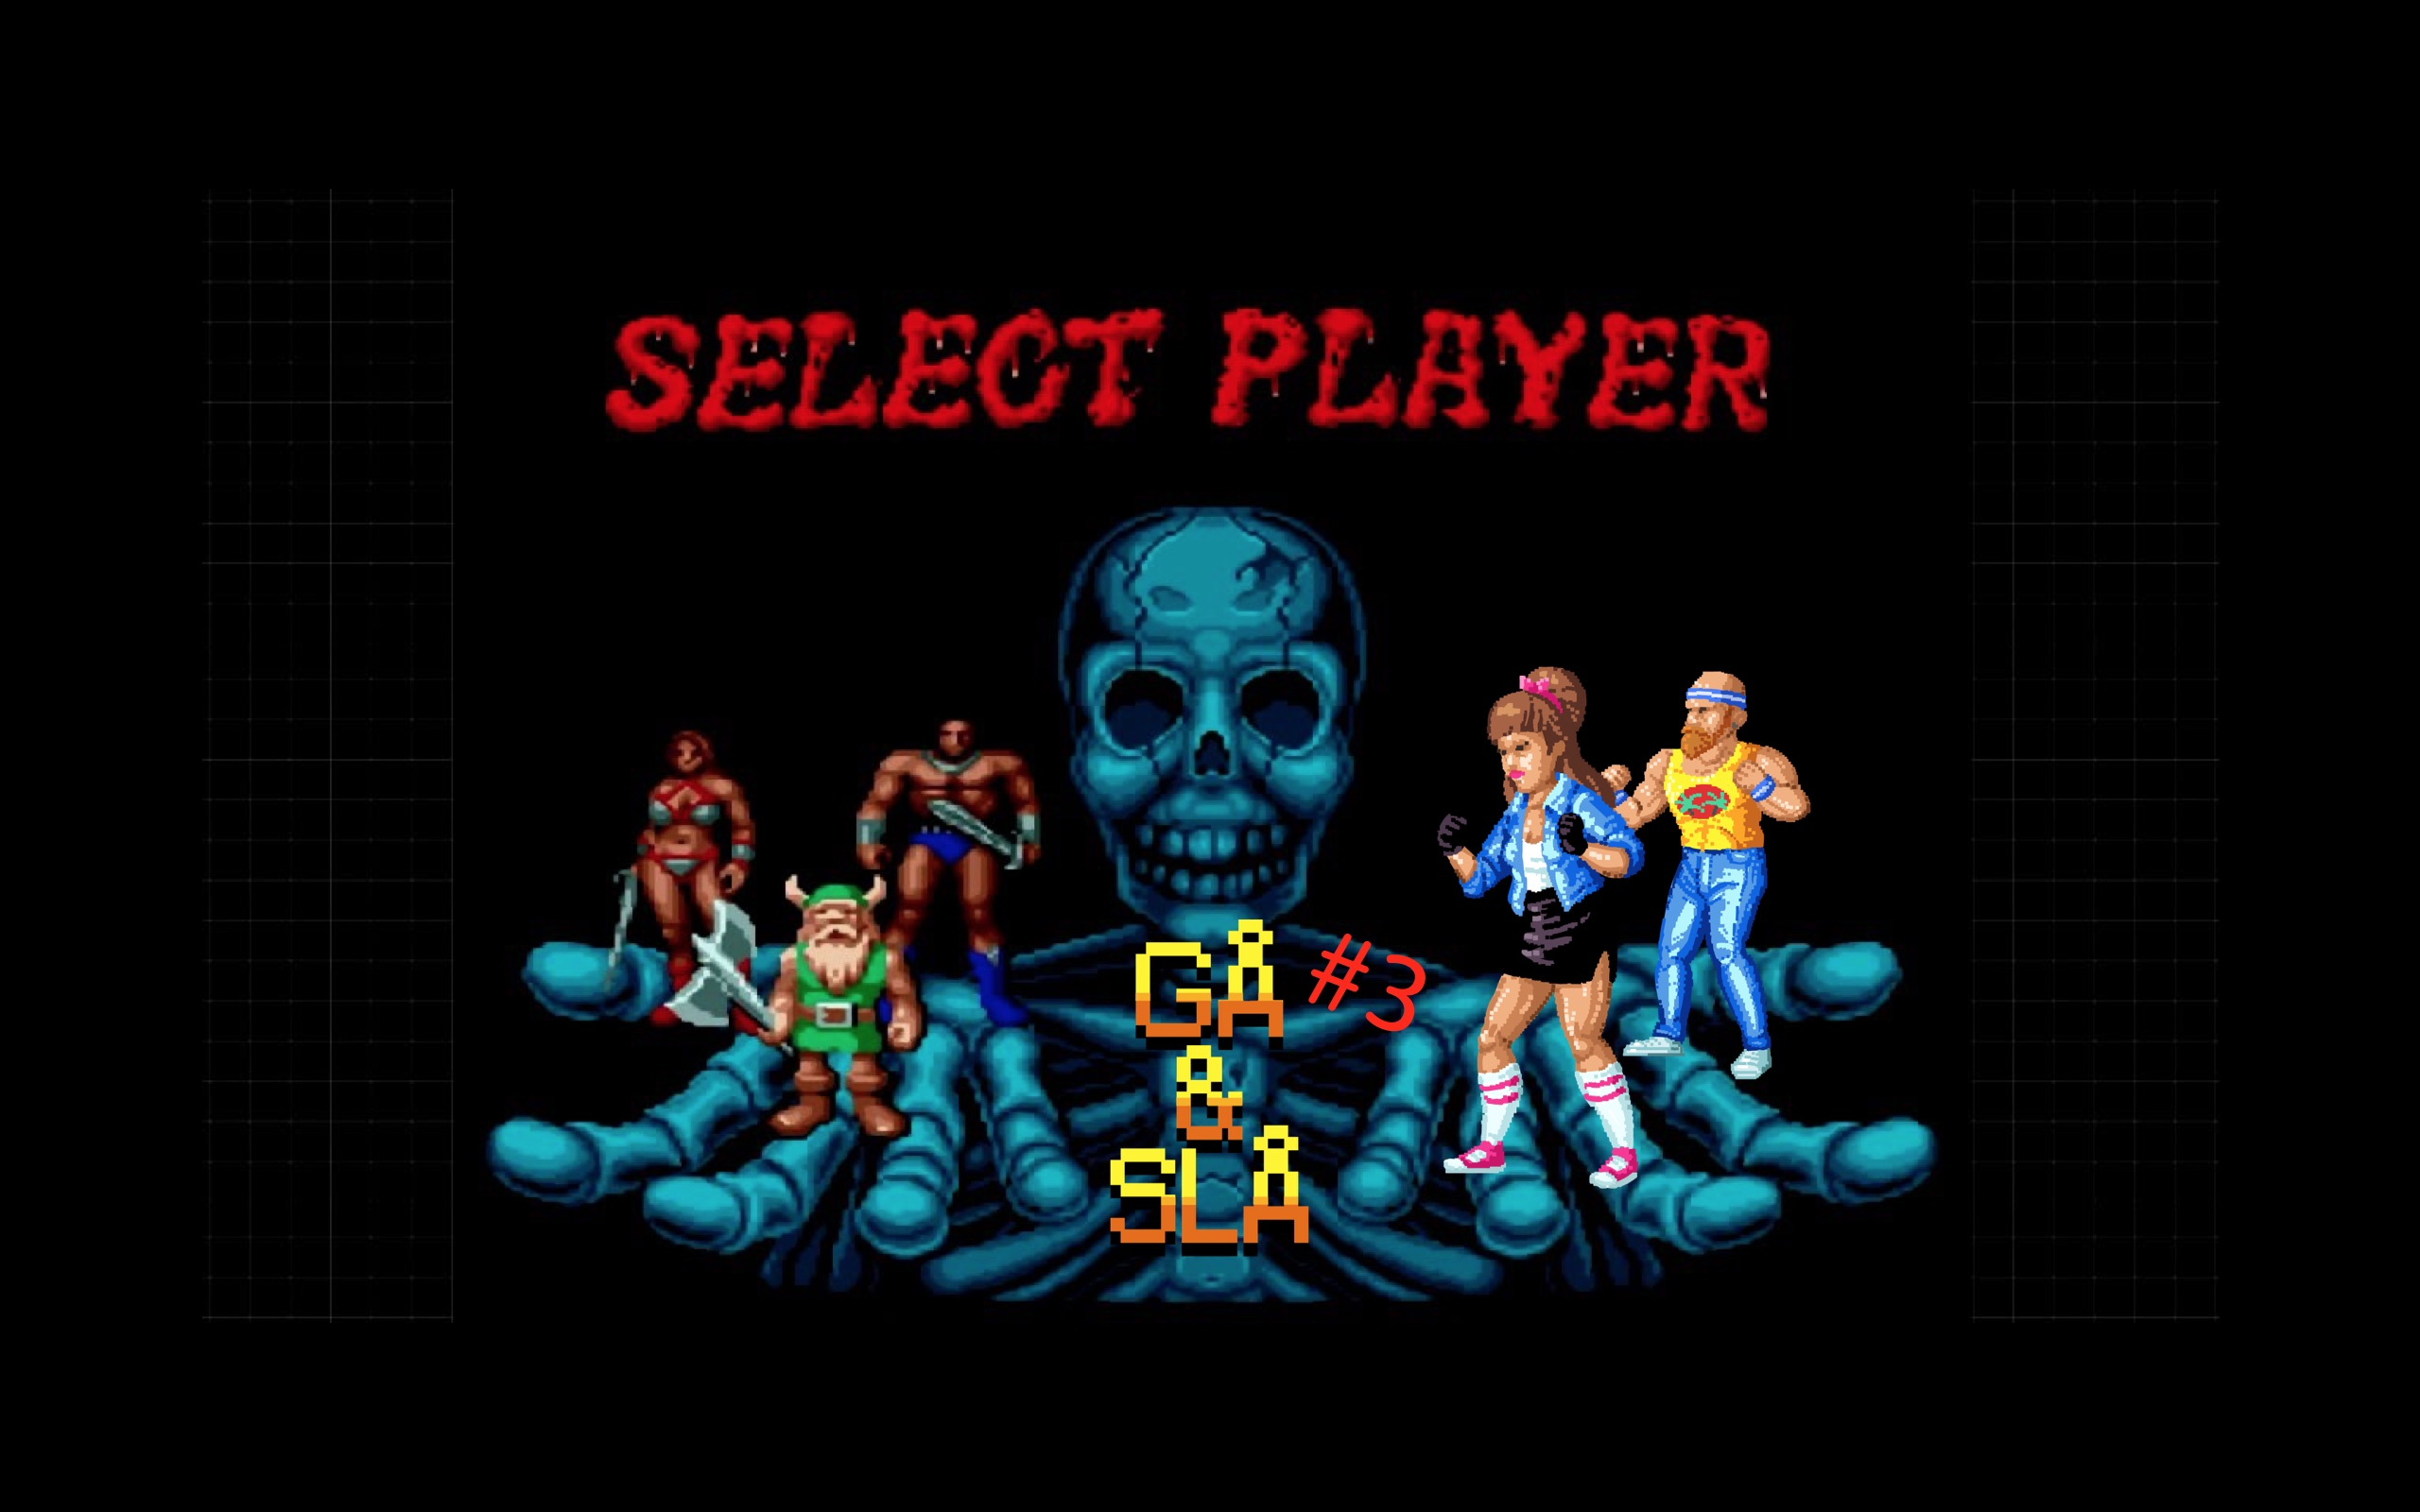 Avsnitt 3: Golden Axe